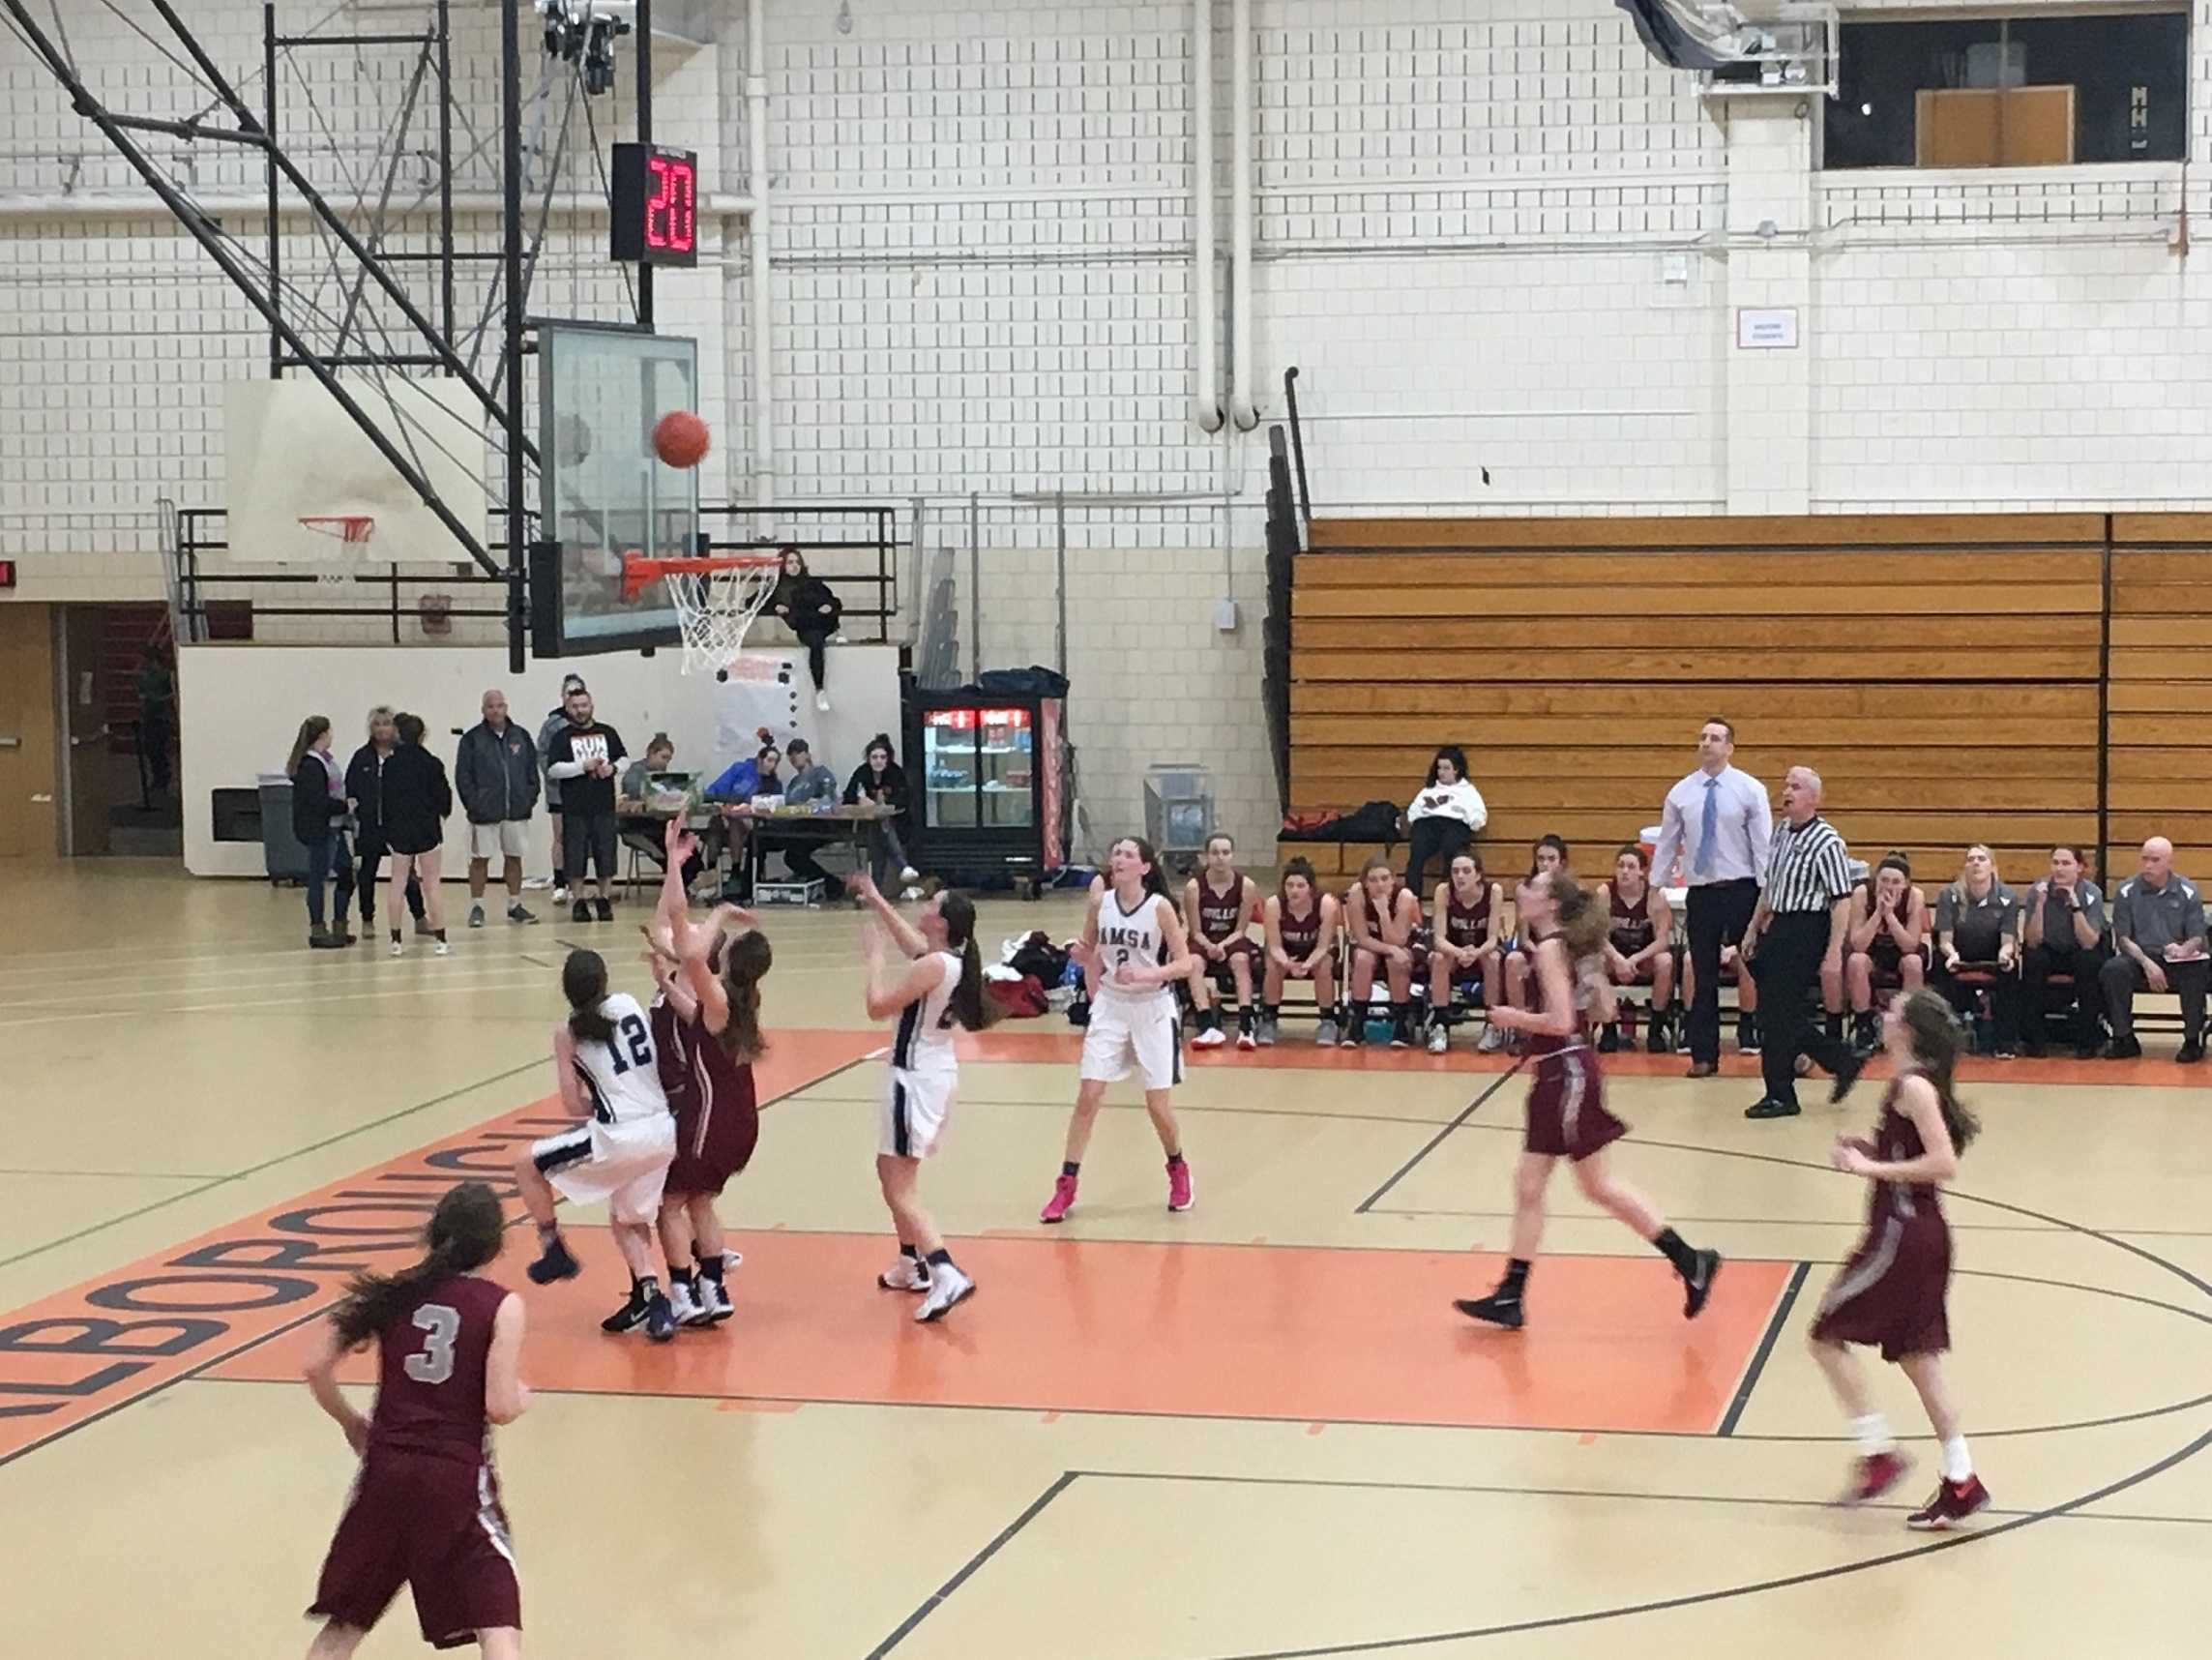 The AMSA varsity girls saw their season end with a playoff loss to Millis.